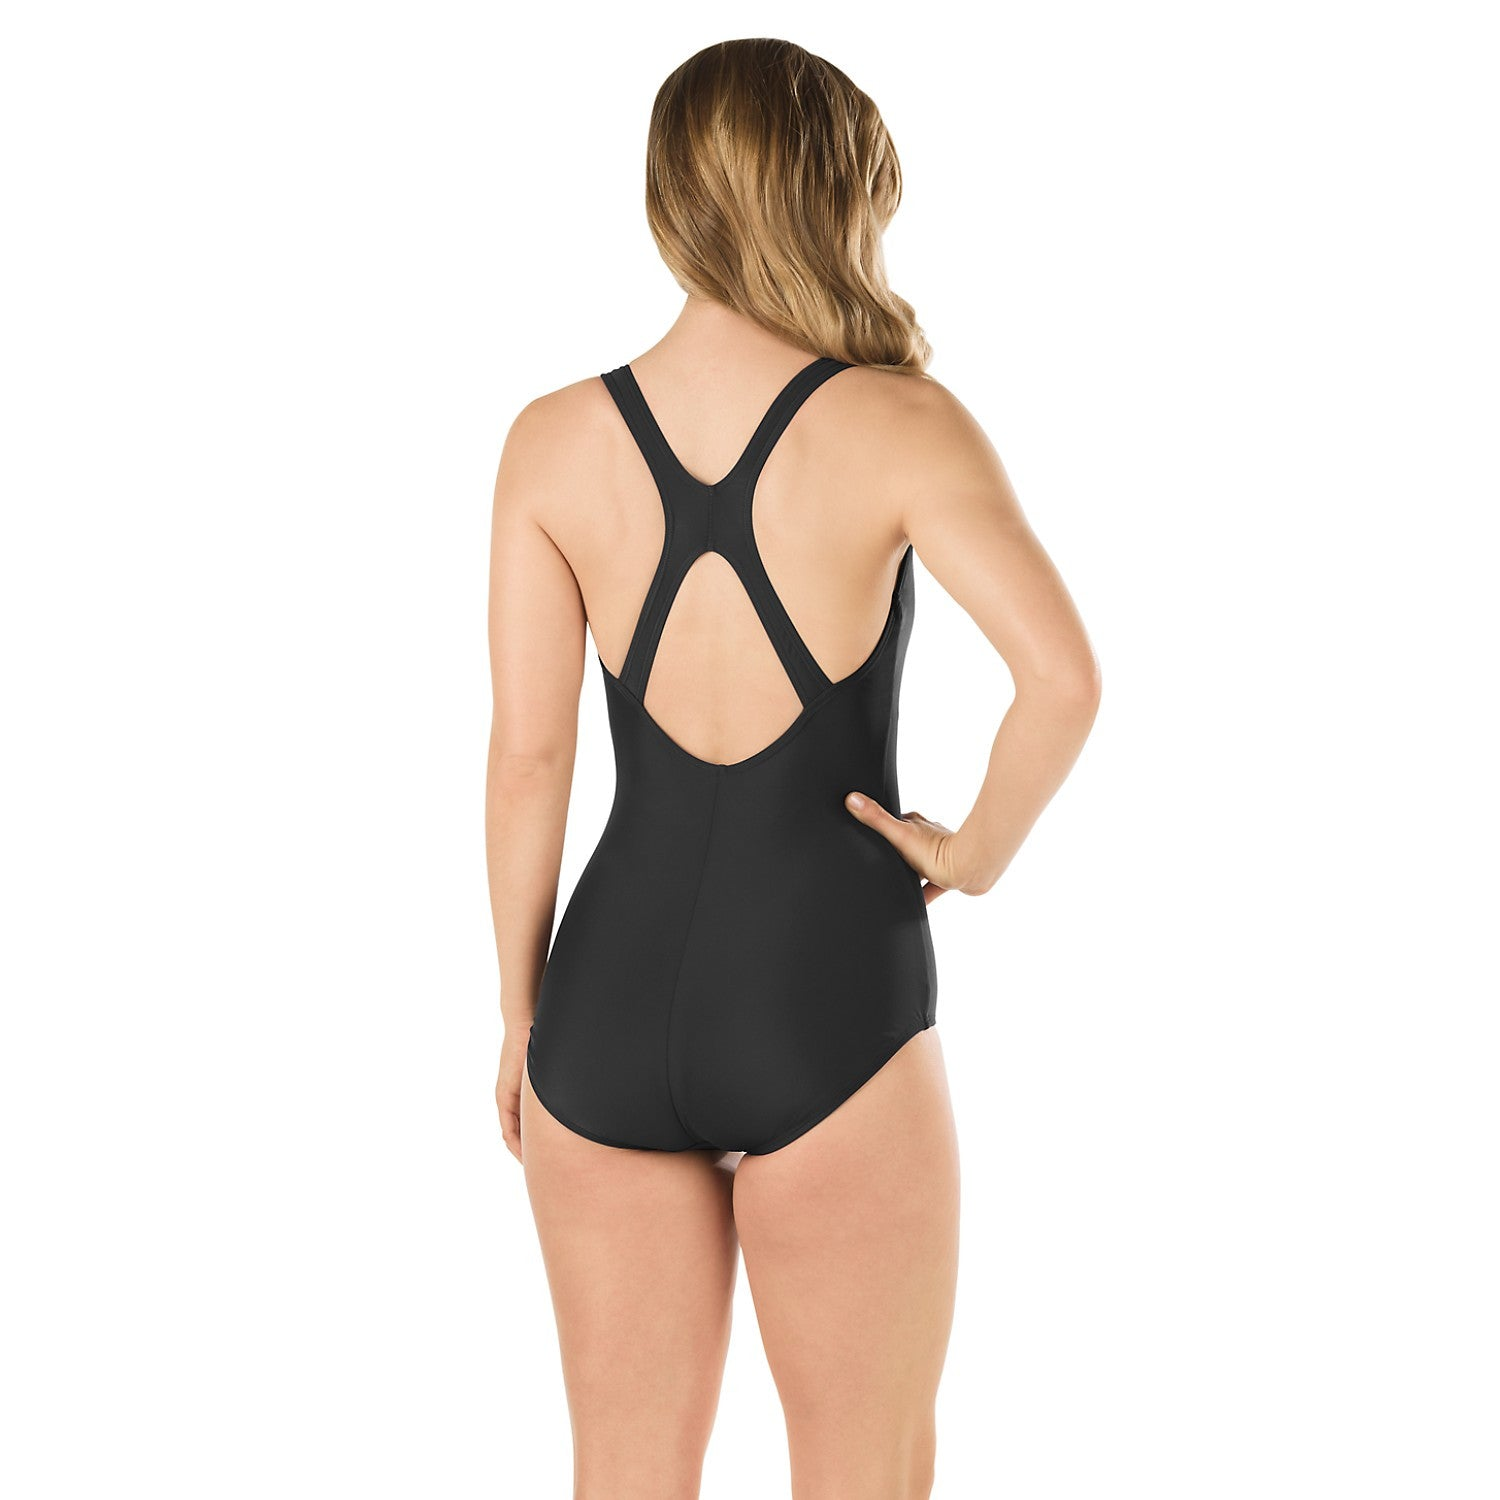 ad5a09eafeb37 Speedo Swimsuit  Moderate Ultraback - PowerFLEX – Army Navy Now